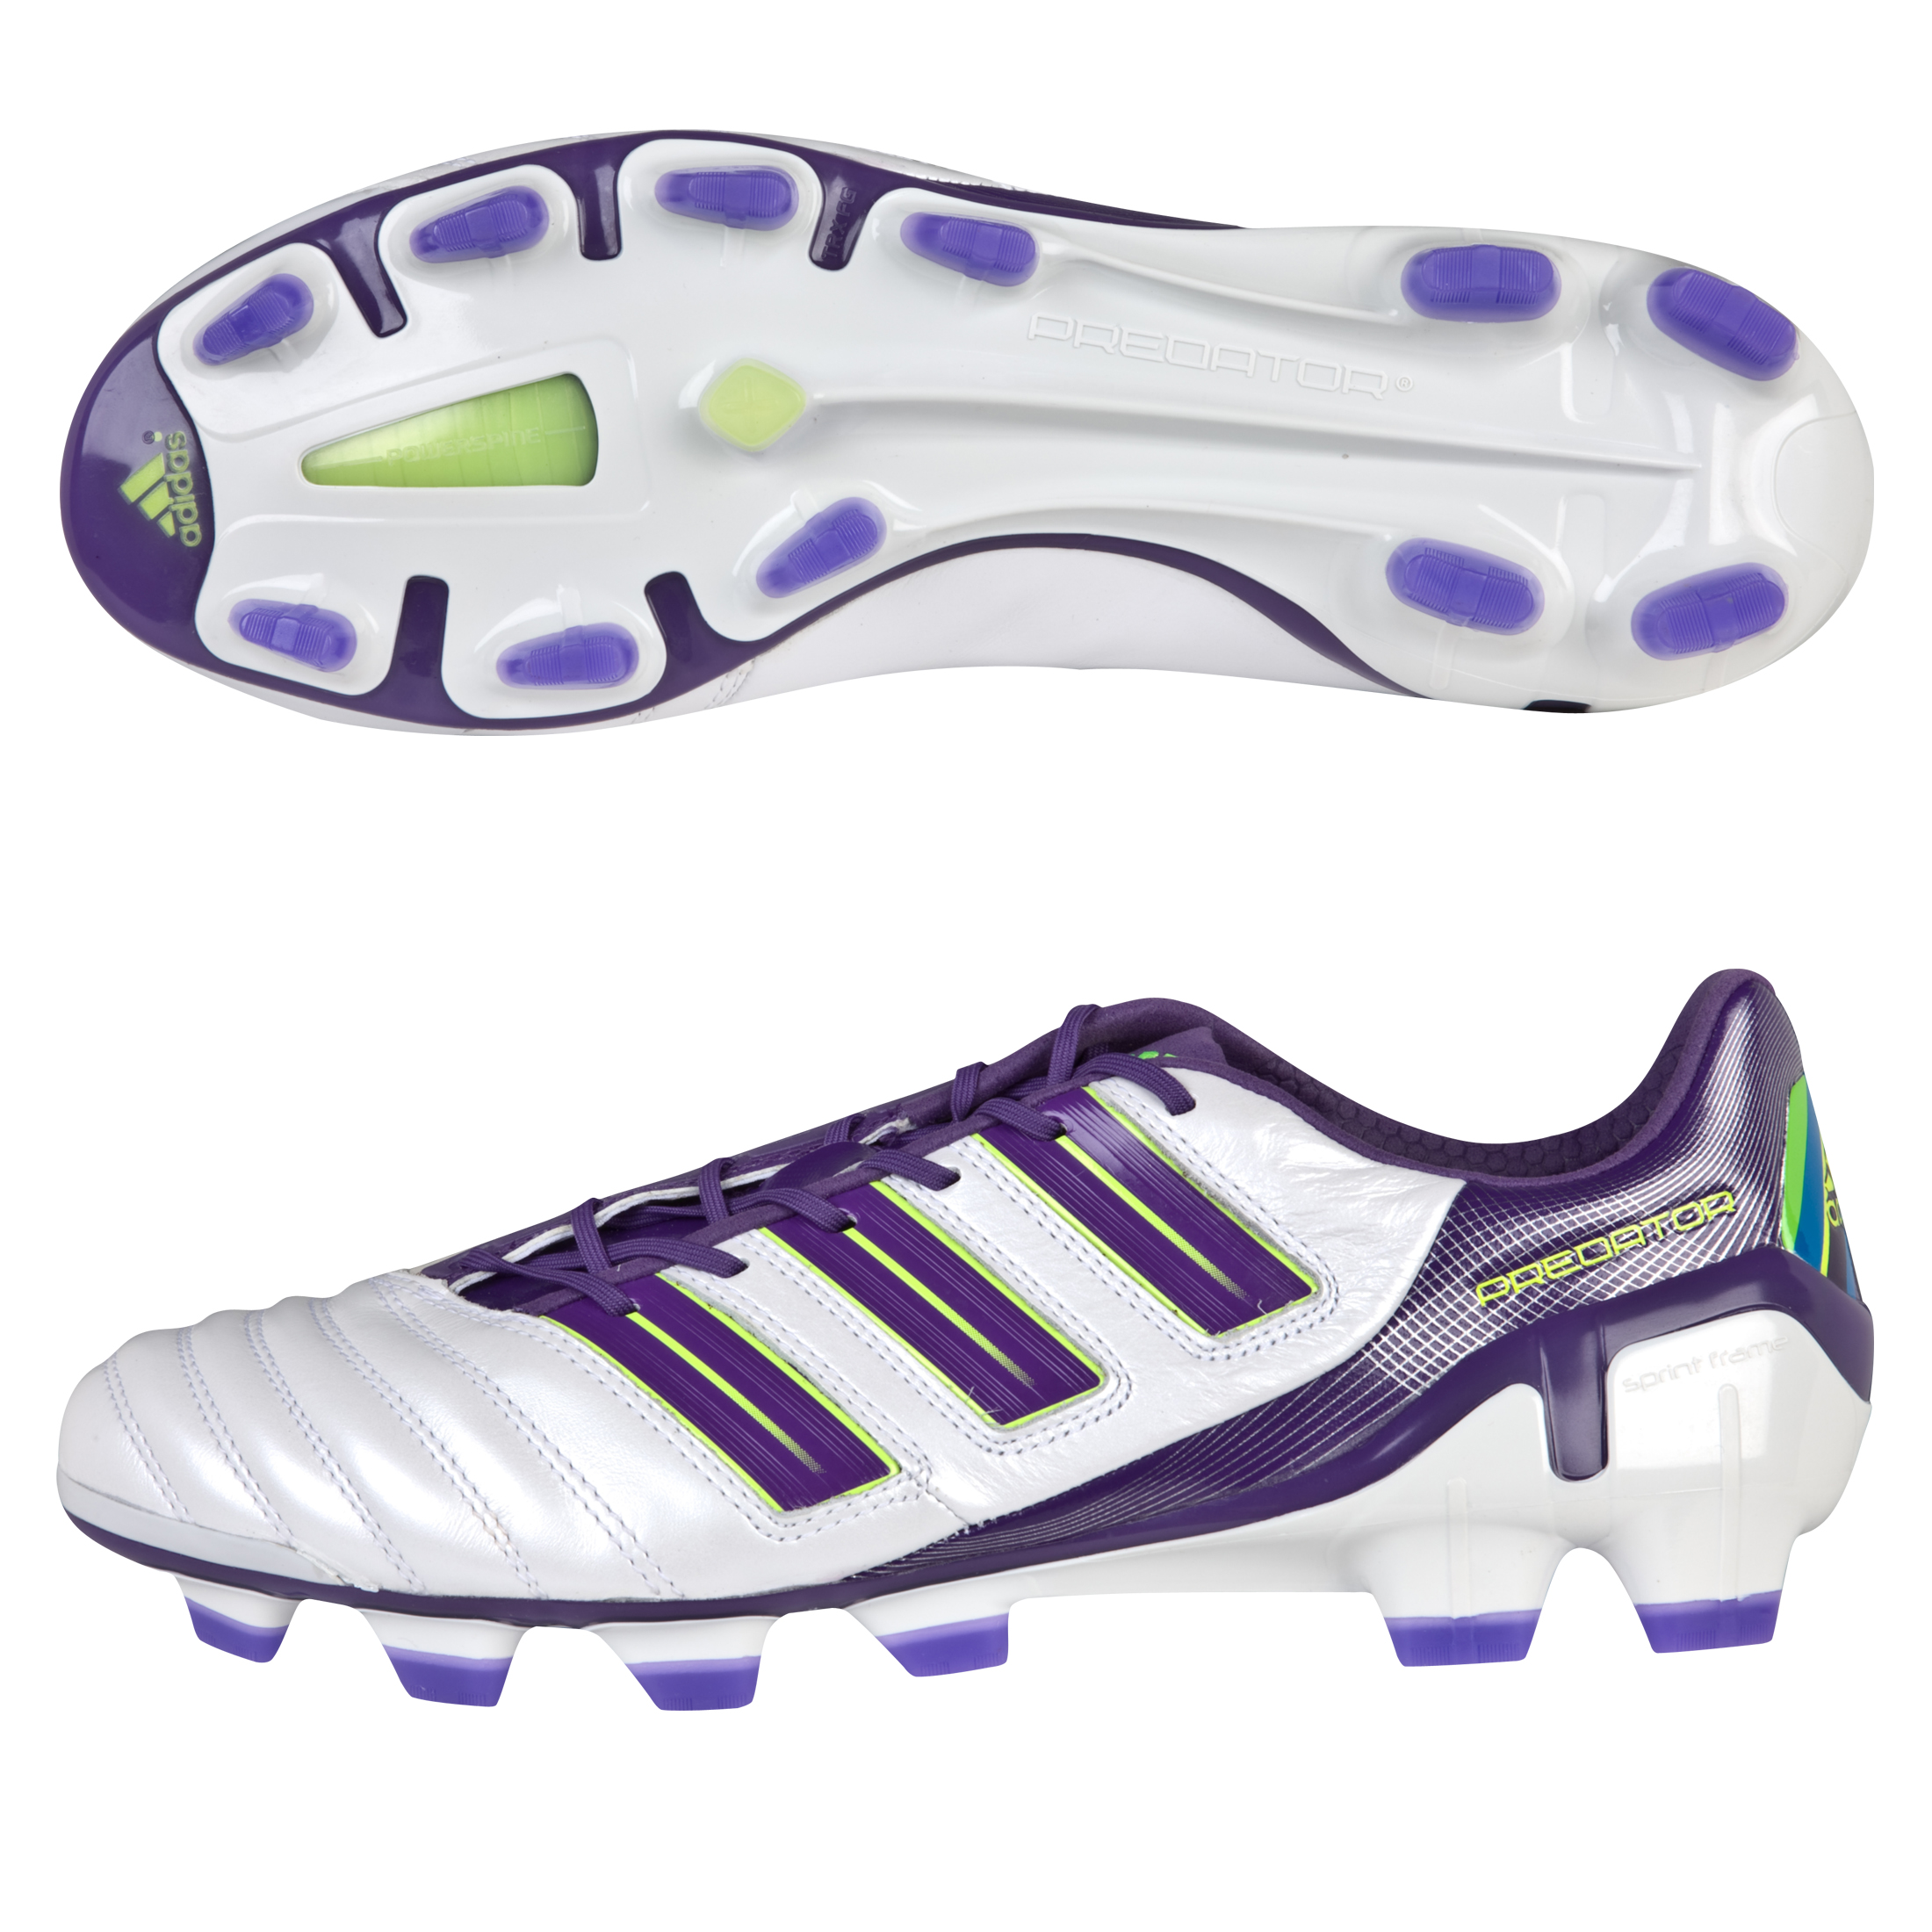 adidas adipower Predator TRX Firm Ground Football Boots - Predator Run Wht / Sharp Purple